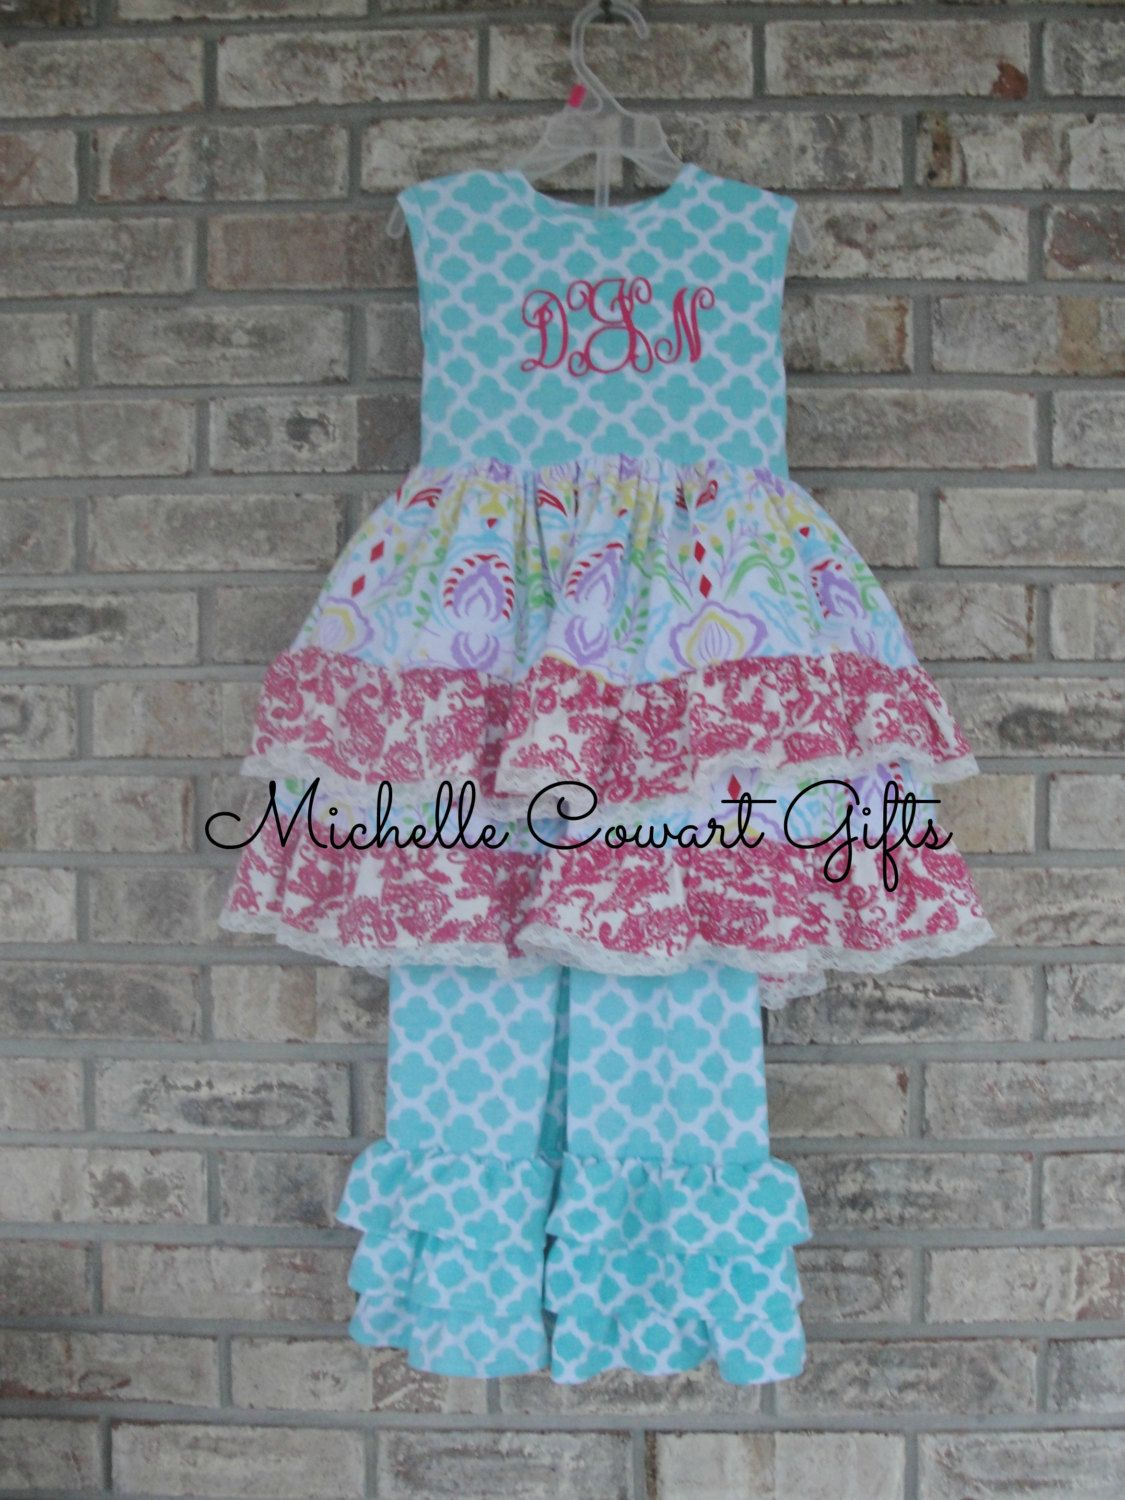 bf8757130 Monogrammed Ruffle Set, Personalized Easter Outfit, Easter Dress, Ruffle  Pant Outfit, Girls, Toddler Outfit, RTS, Girls Floral Dress by  MichelleCowartGifts ...